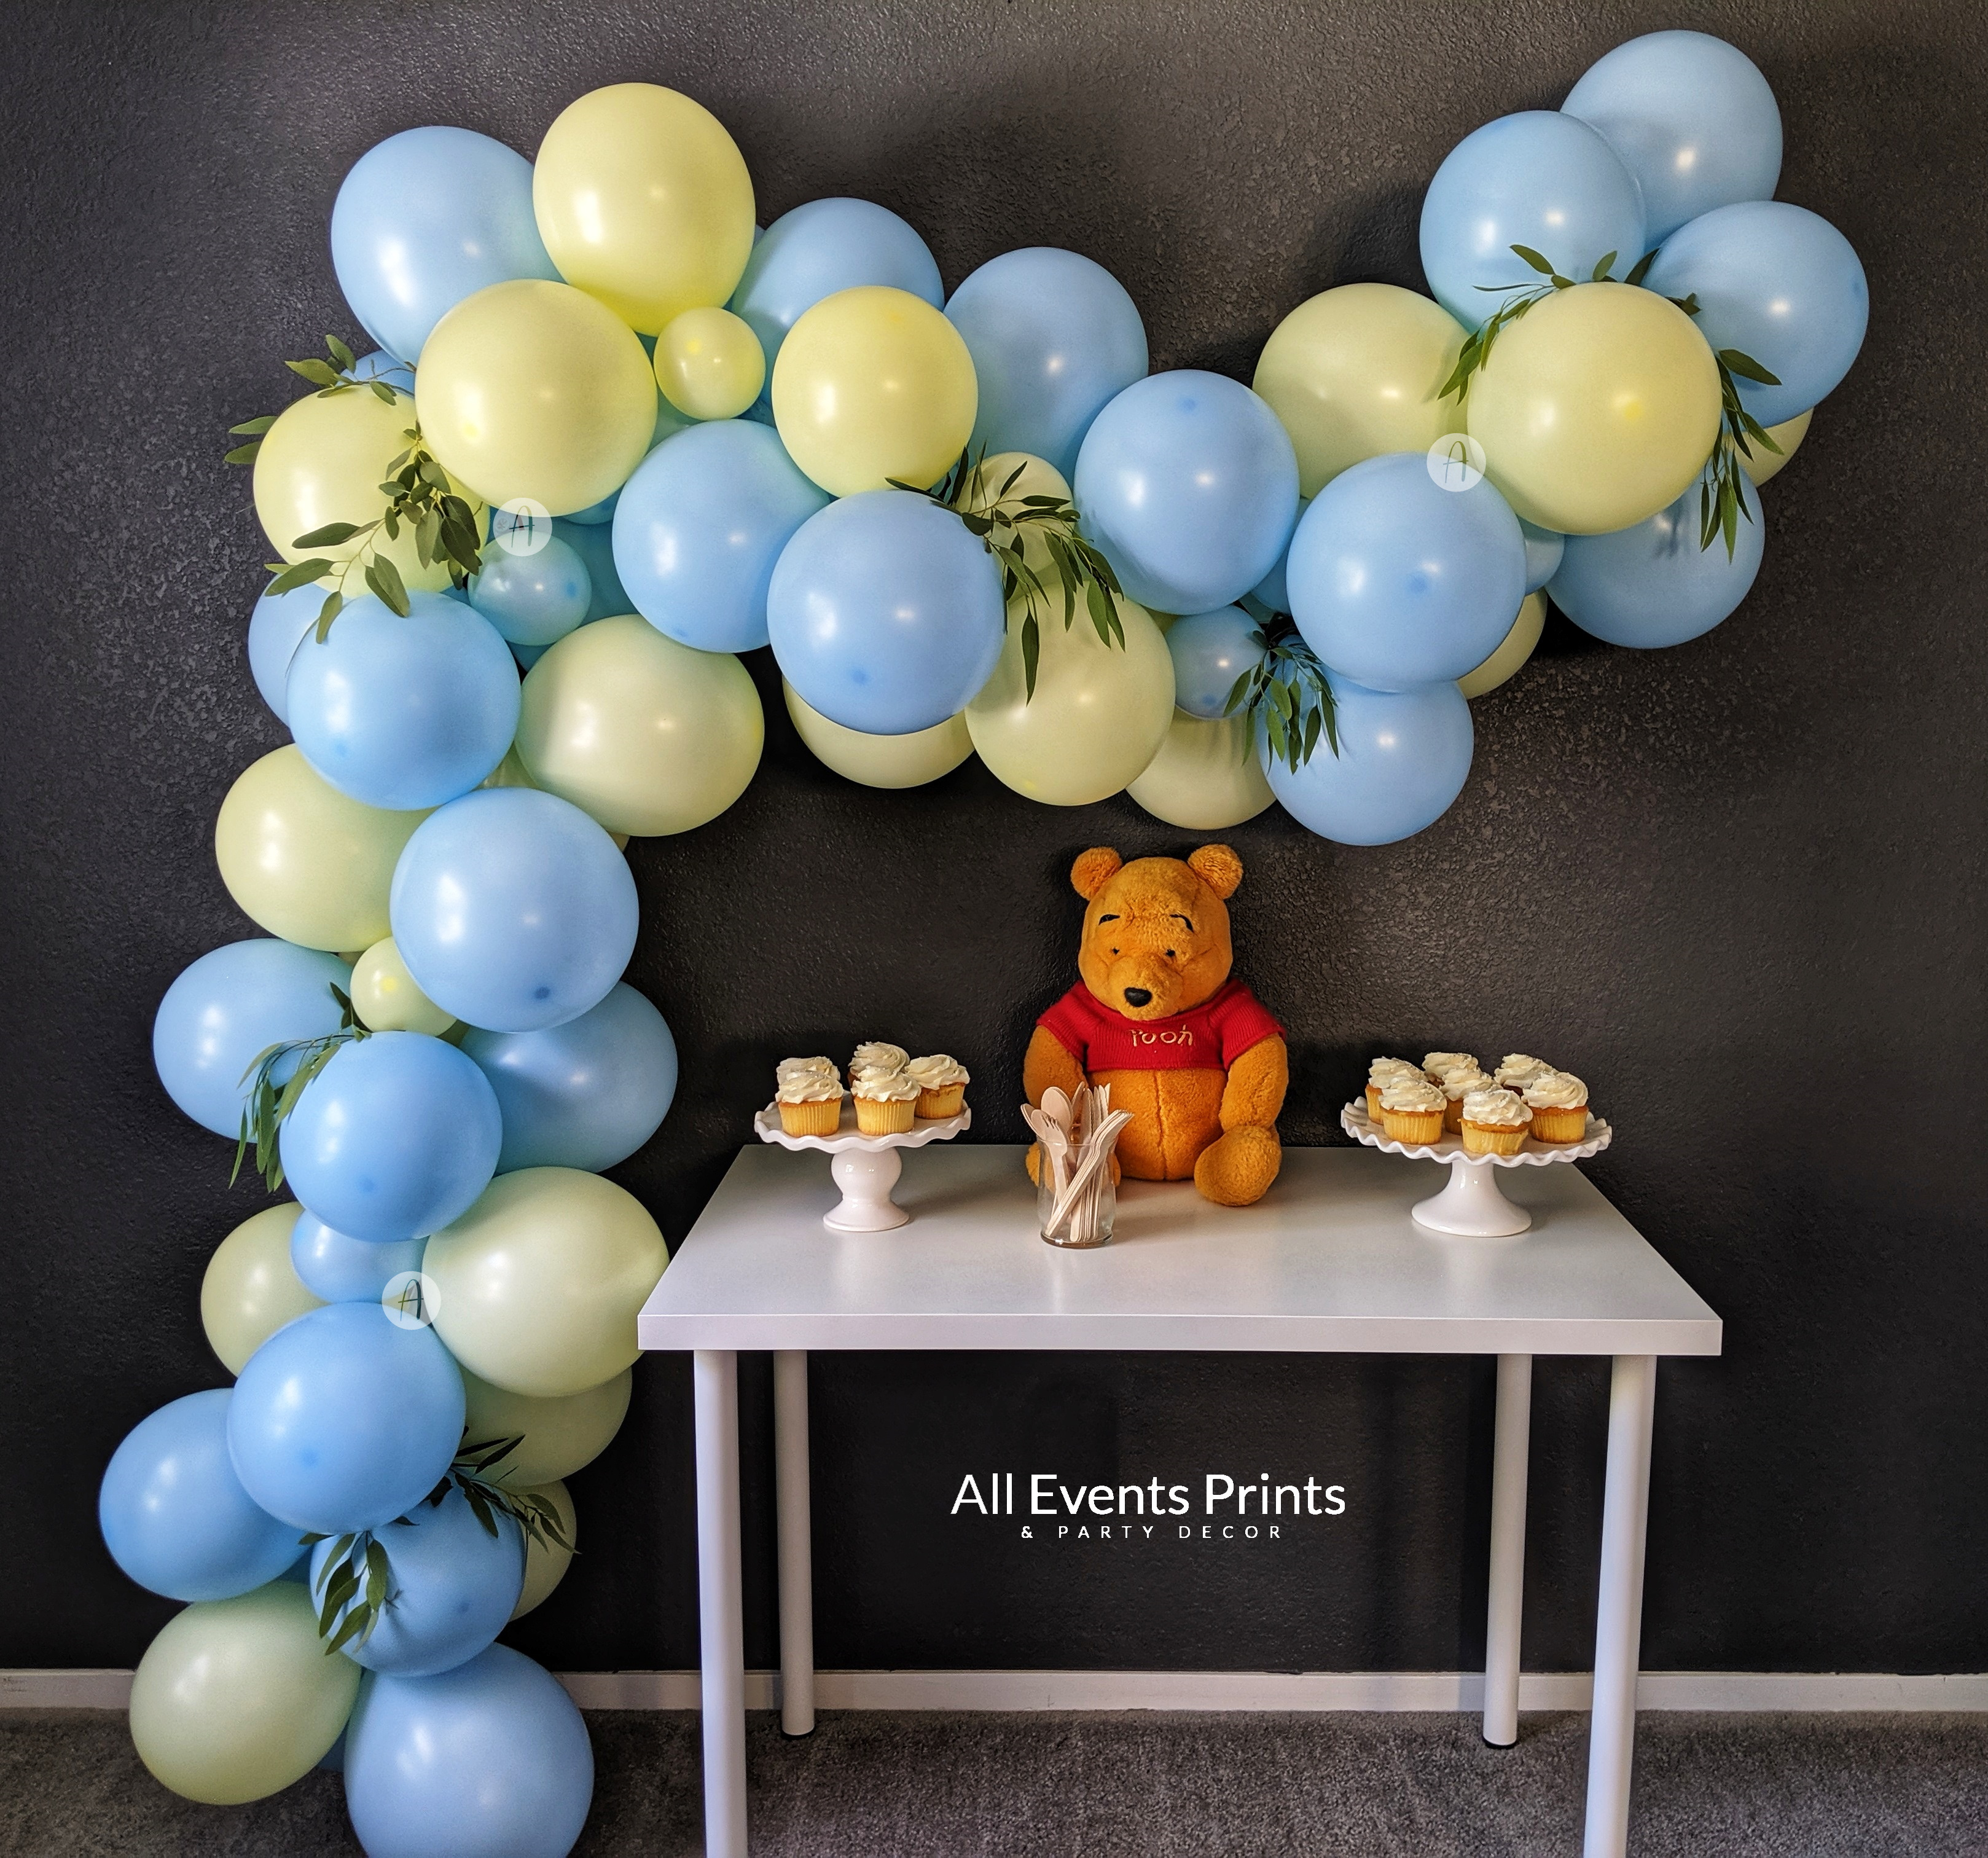 Oh Pooh Balloon Garland Diy Kit 5 Ft 25 Ft Includes Everything That You Will Need For Assembly All Events Prints Party Decor